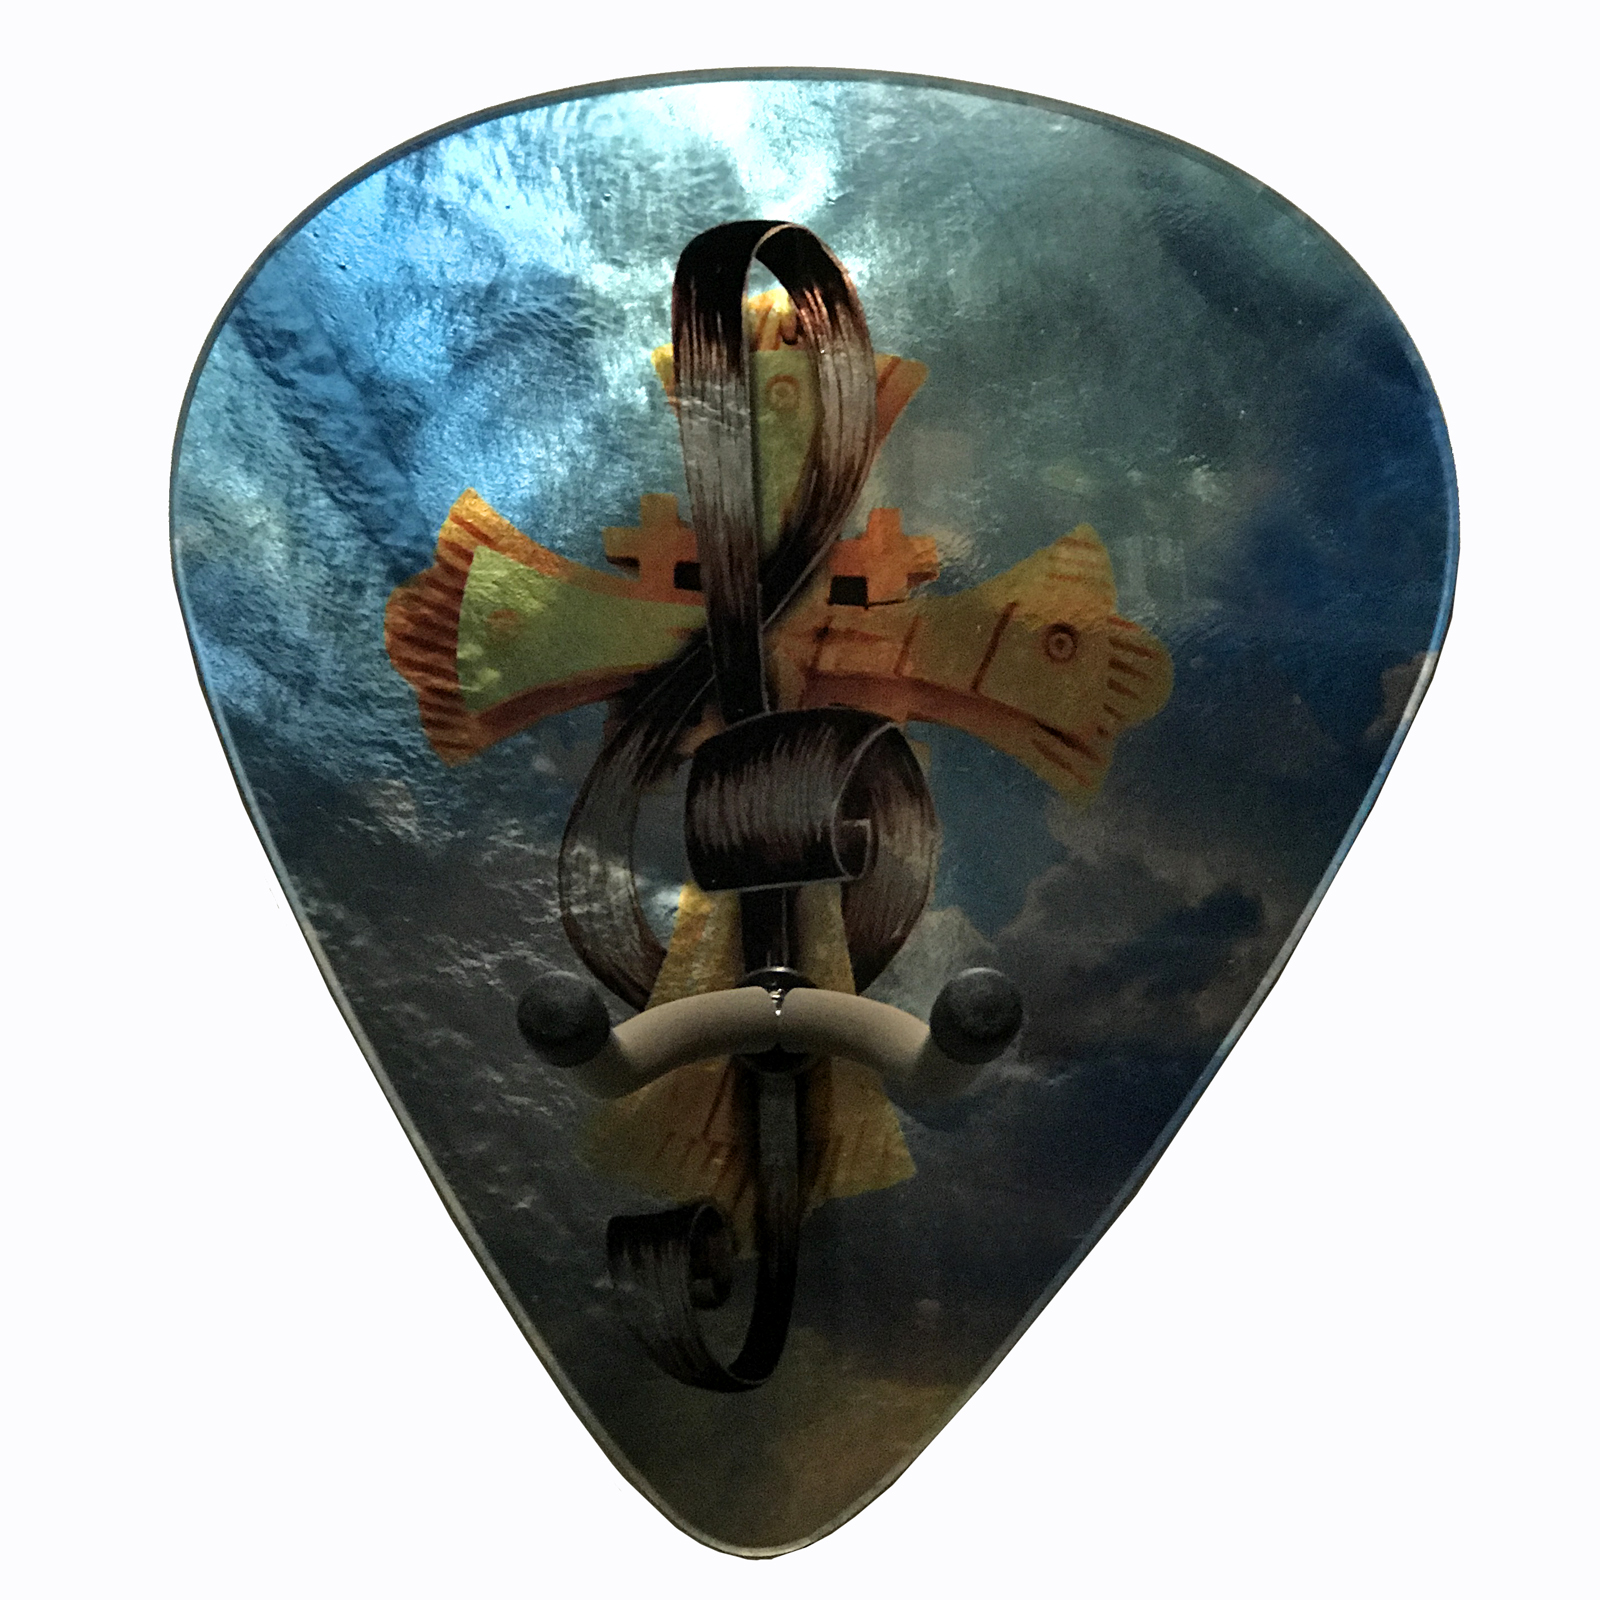 Axetreme Pick Guitar Wall Hanger™ - Includes String Swing Hanger - Christian Cross / Treble Clef